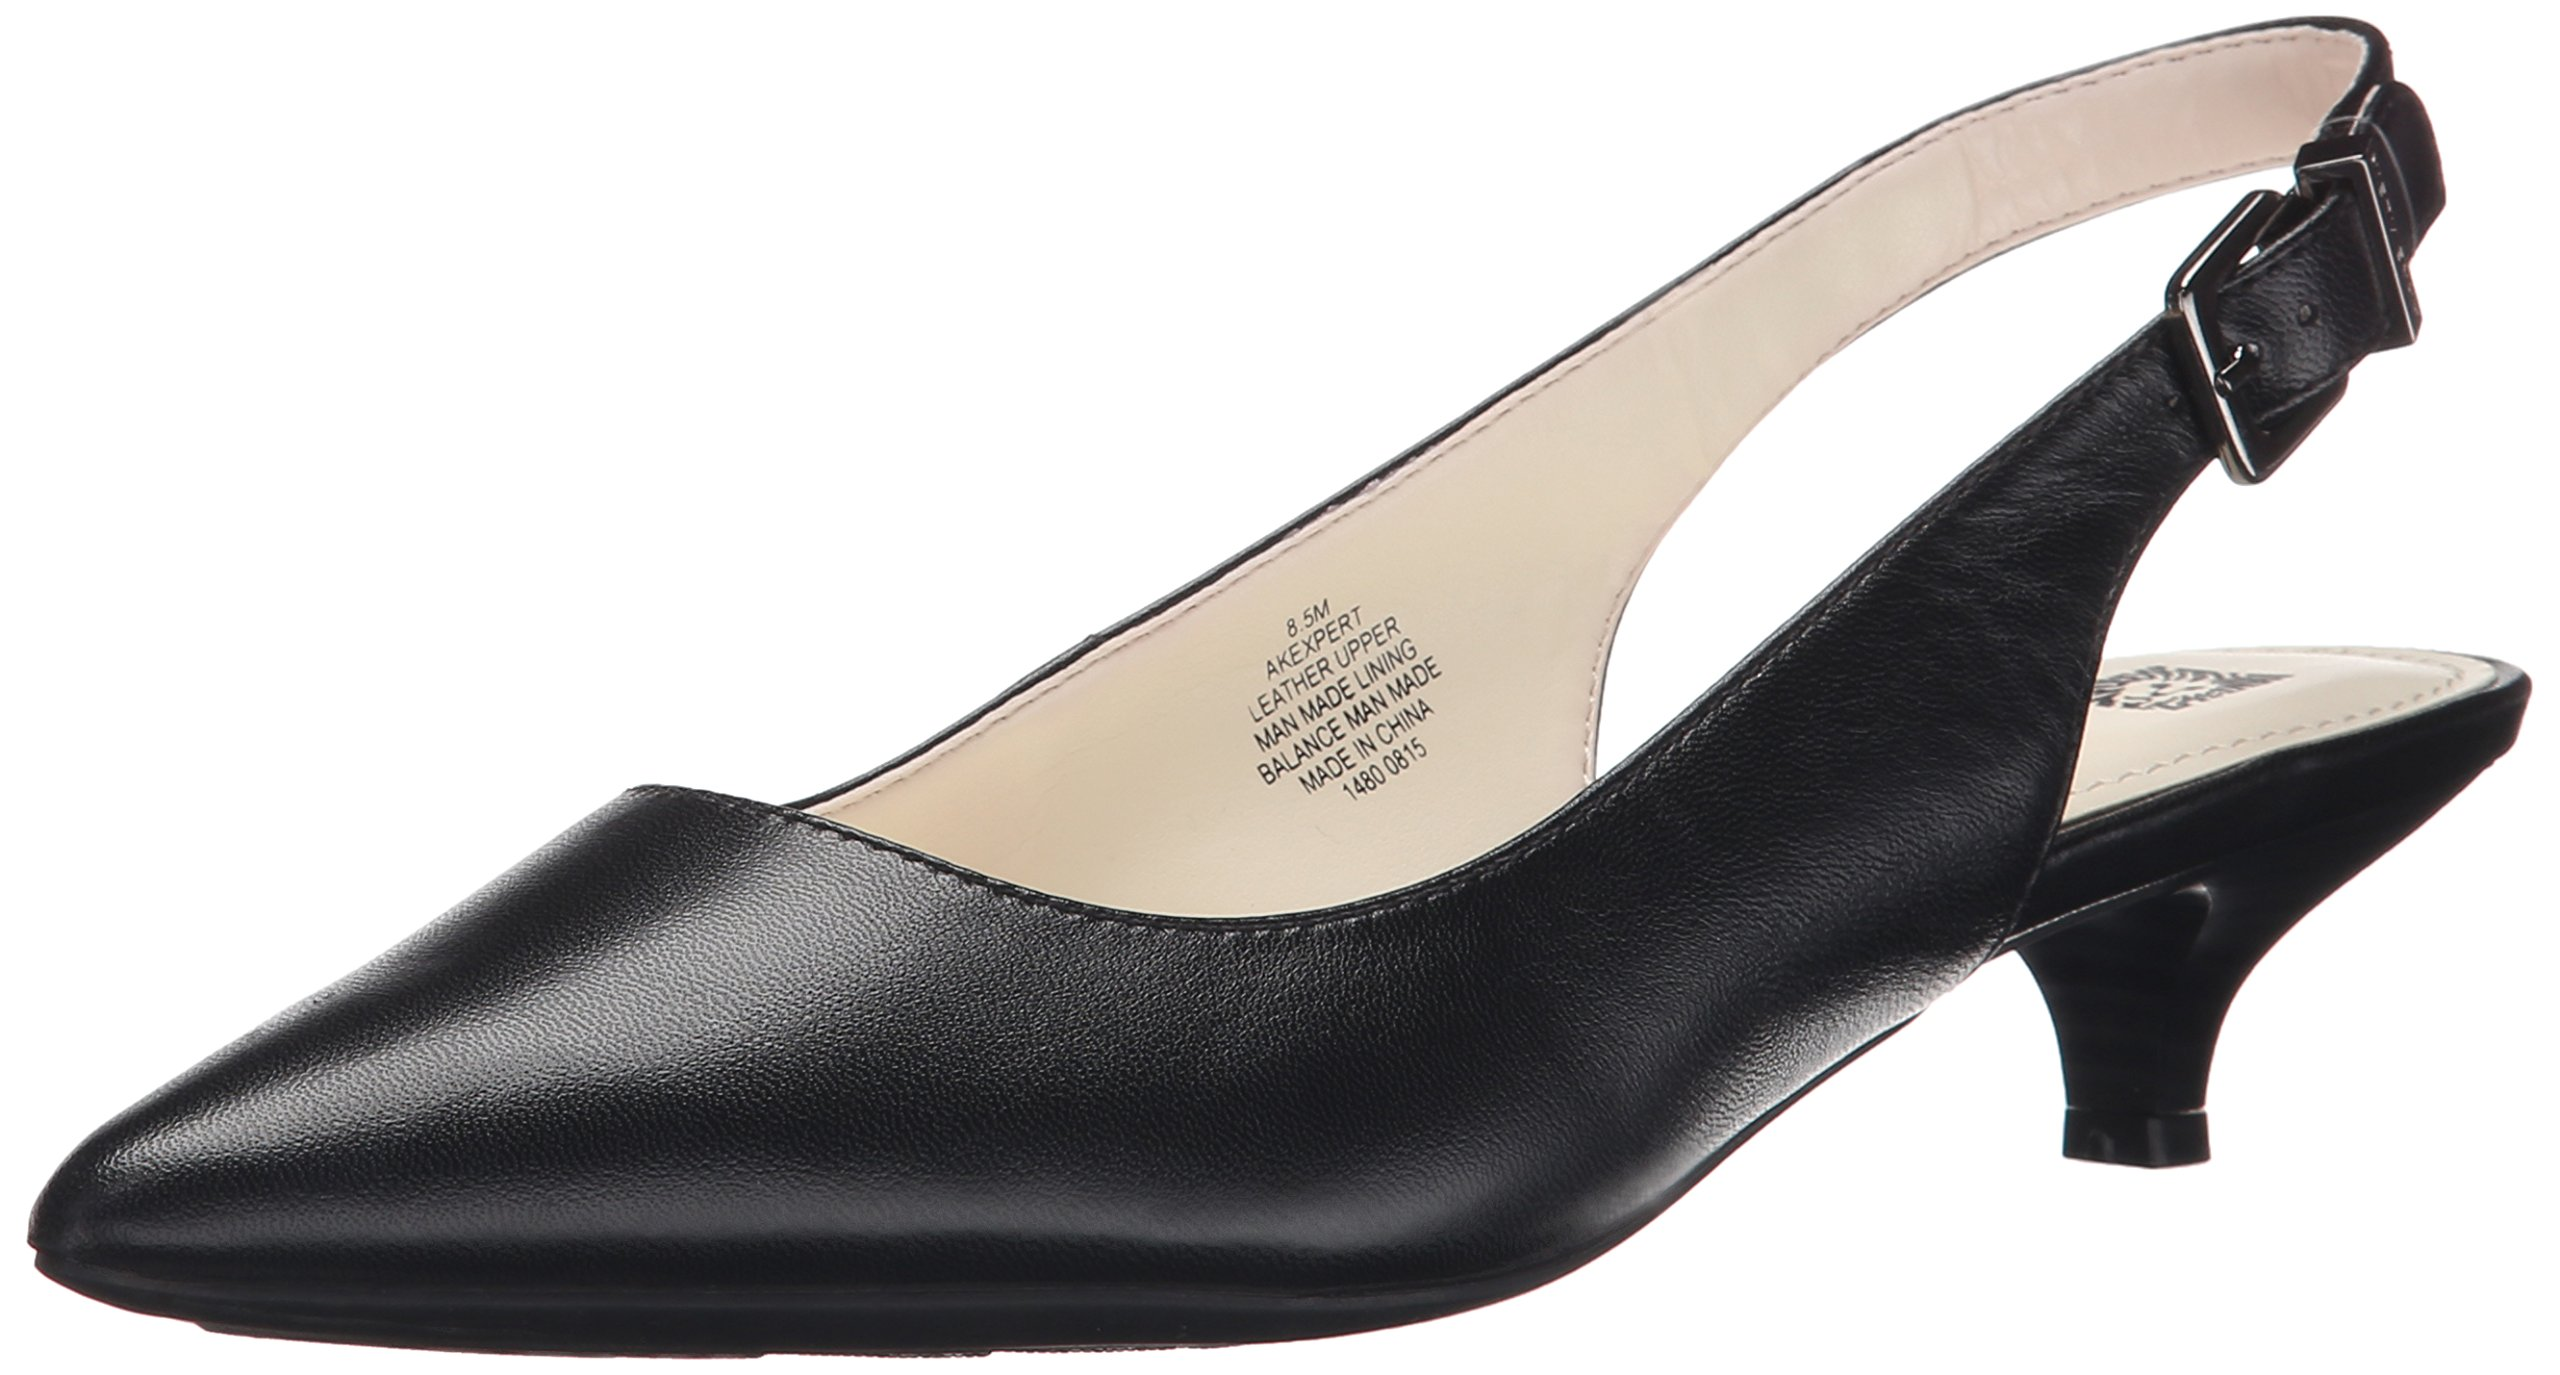 Anne Klein Women's Expert Dress Pump, Black, 7.5 M US